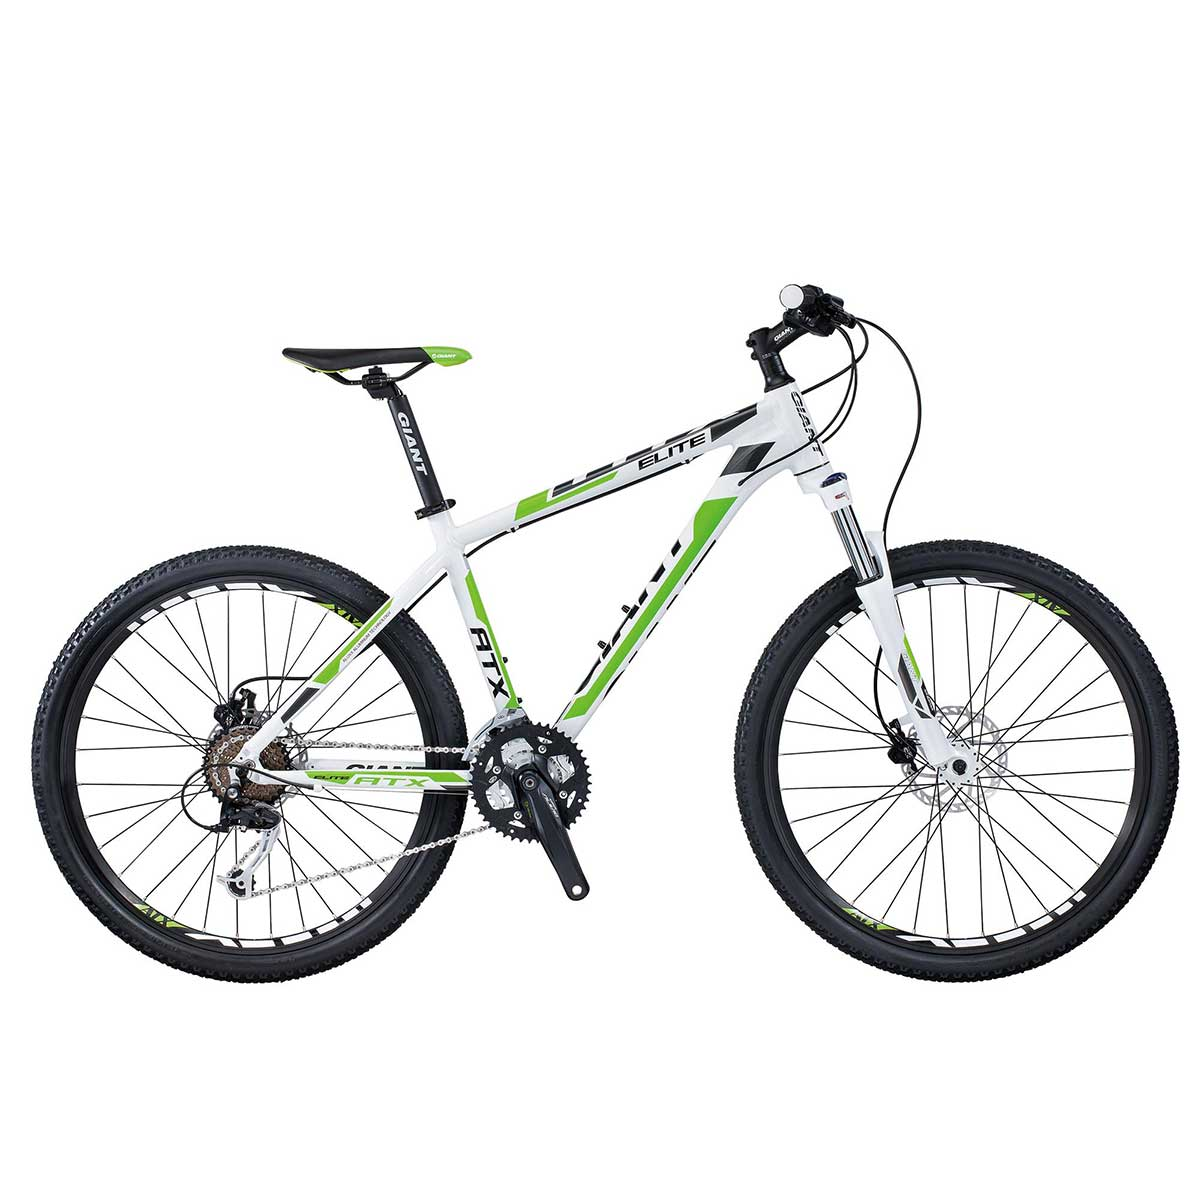 Buy Bicycle Online >> Buy Giant Atx Elite 1 Mountain Bicycle Online India Giant Bicycles